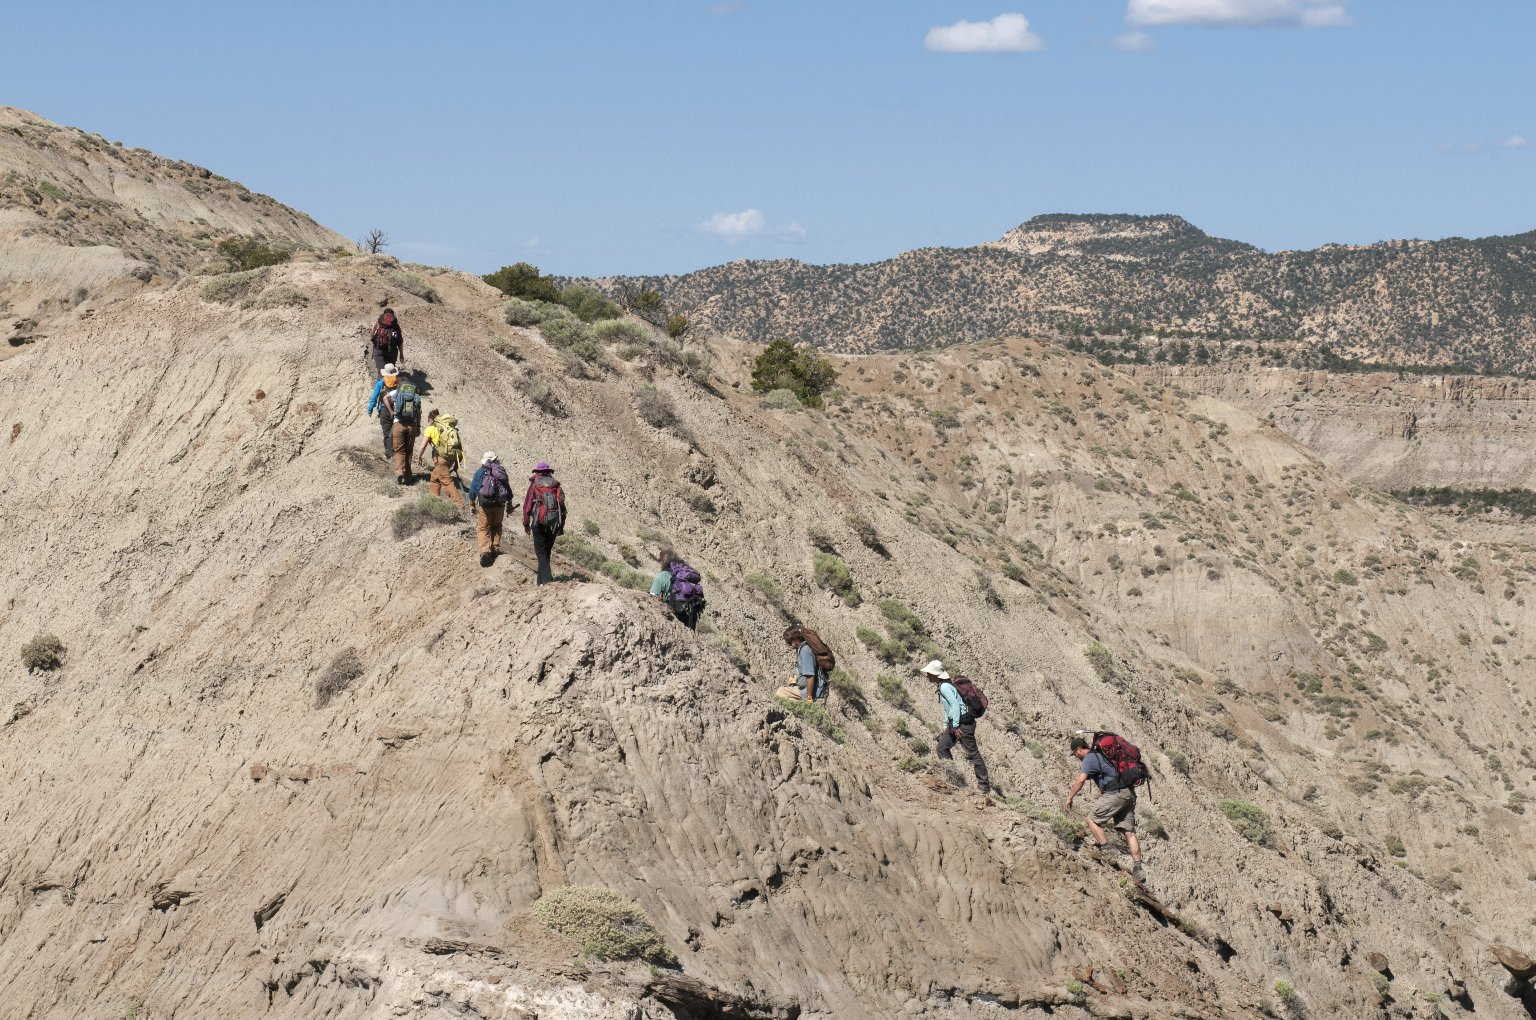 The DMNS group hikes up an incline along a ridgeline in the Kaiparowits Plateau.